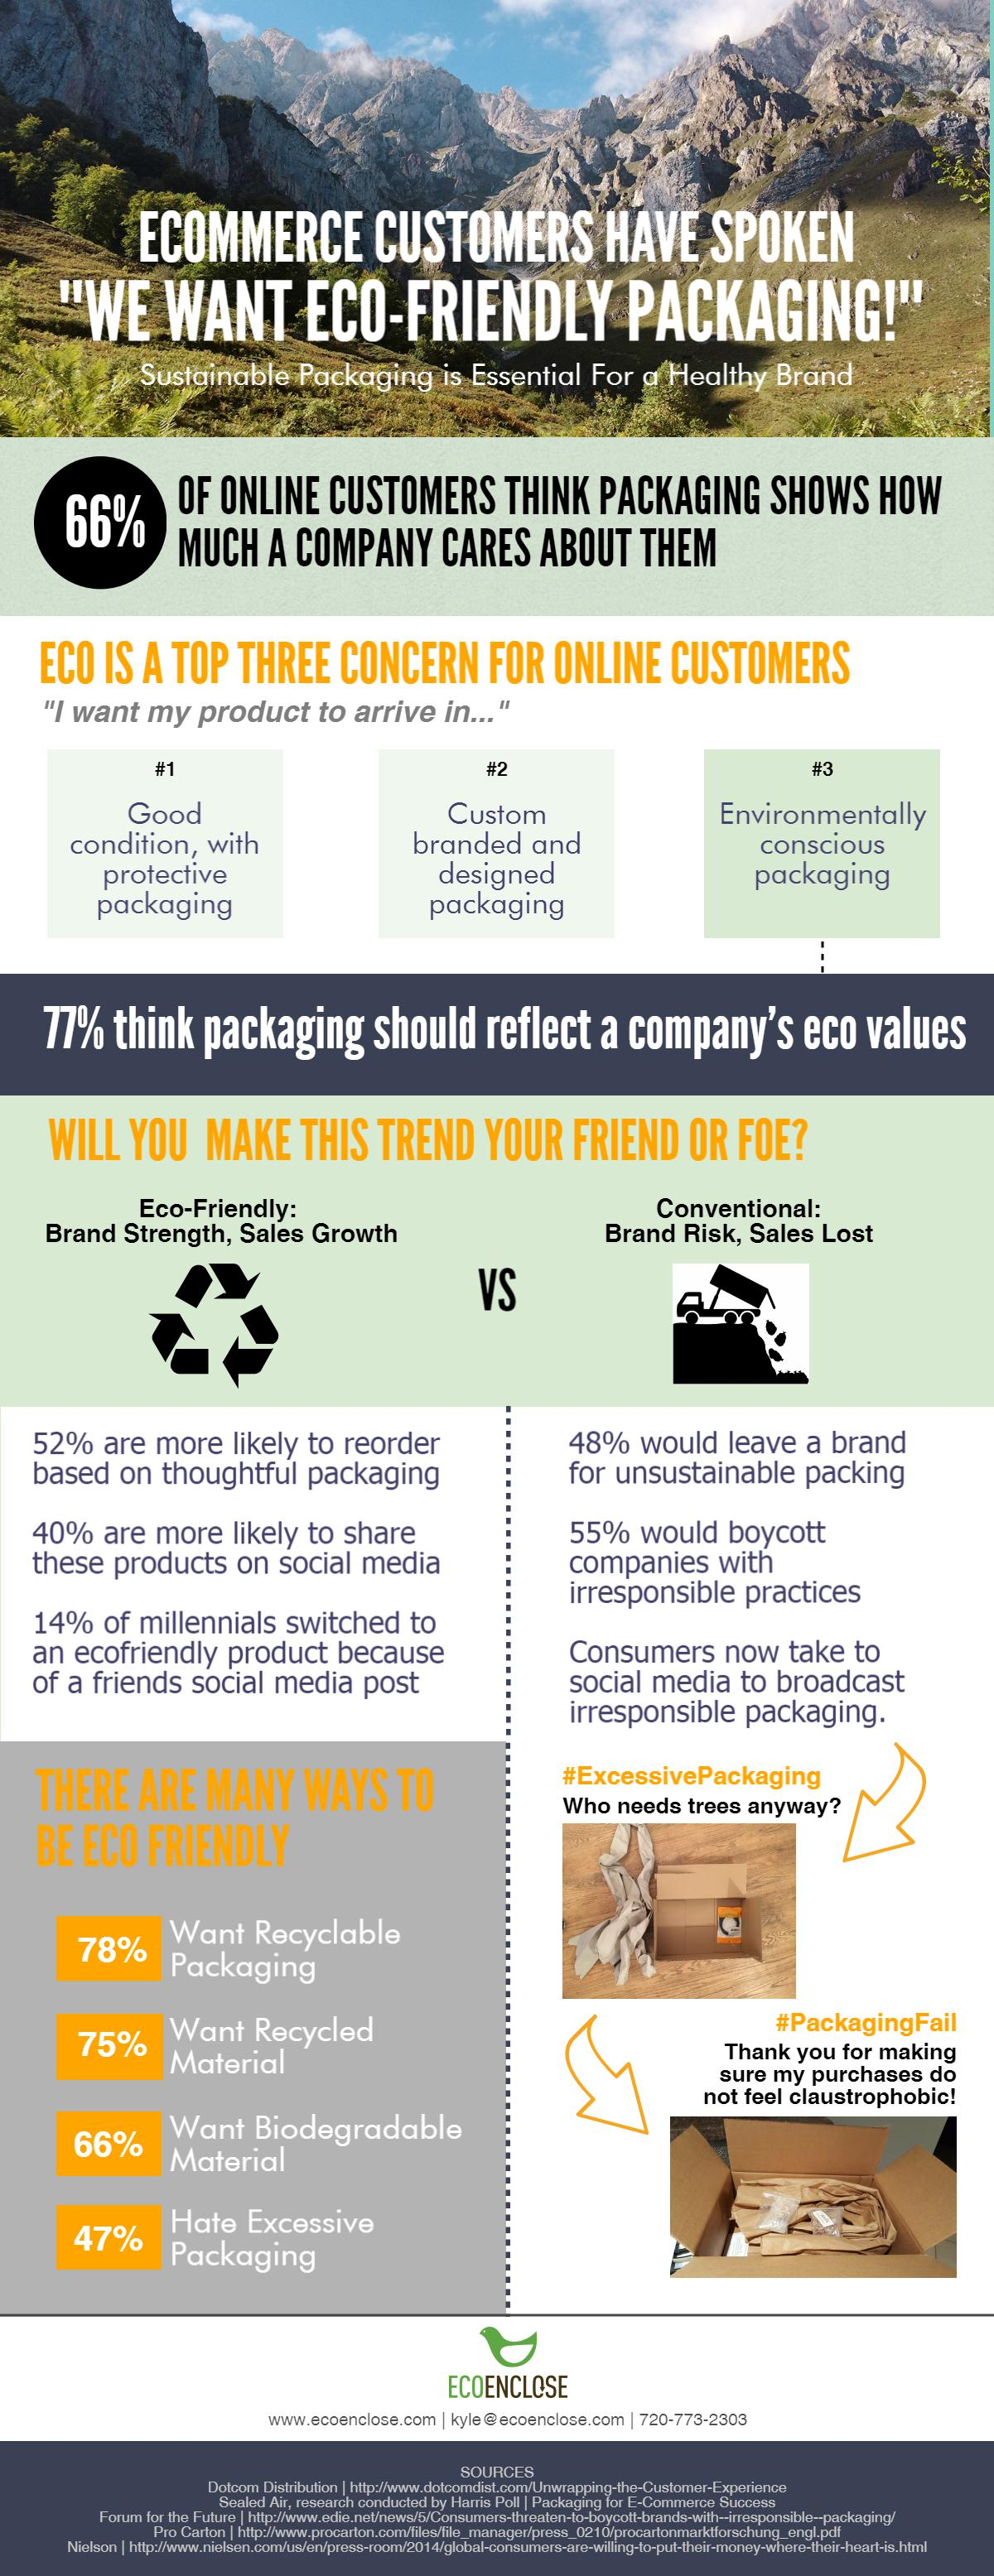 Ecommerce Customers Want Eco-Friendly Packaging